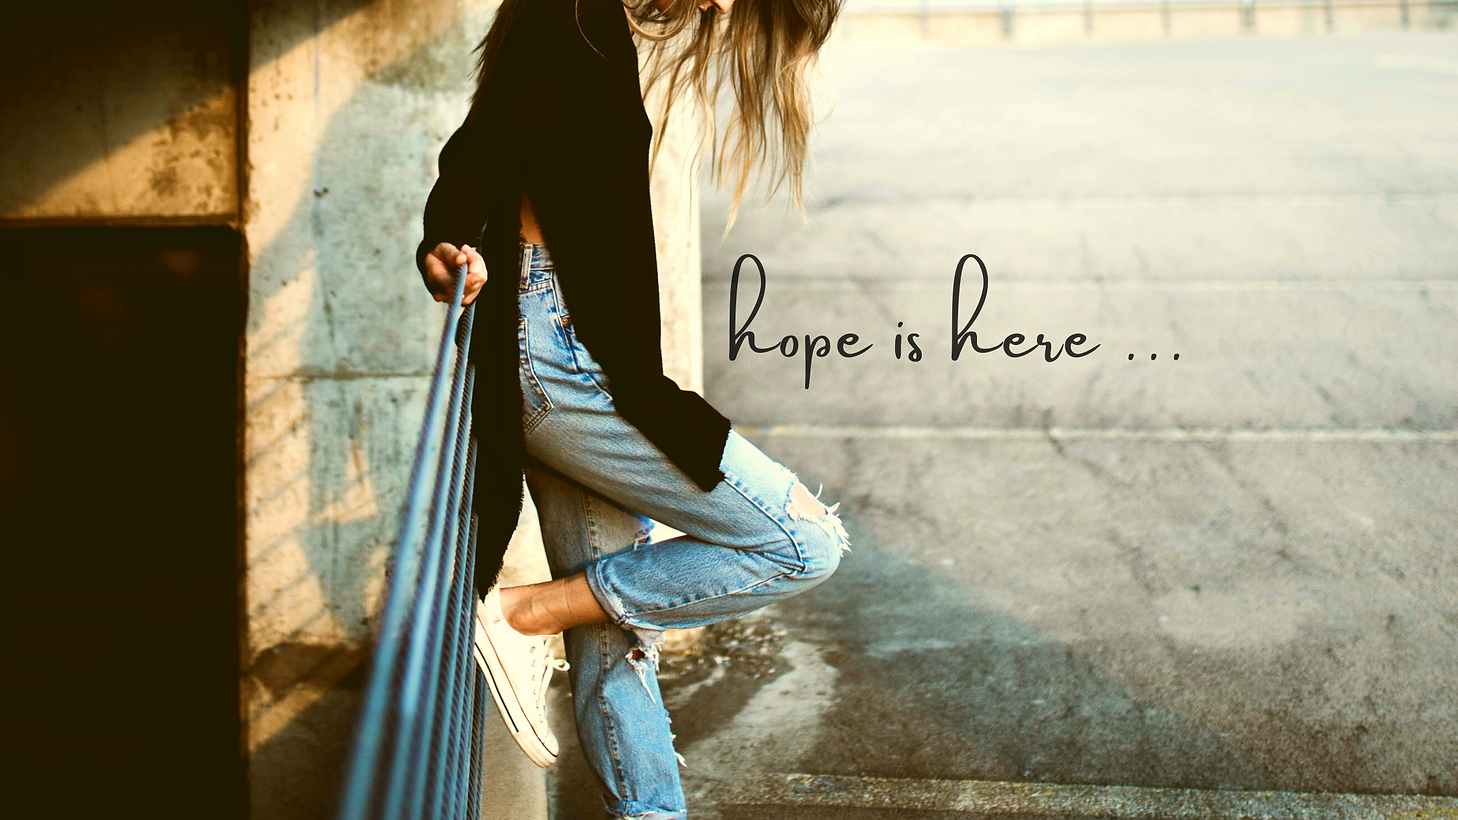 Unveiling Hope. hope is here. A hopeful young woman taking a moment to ponder.